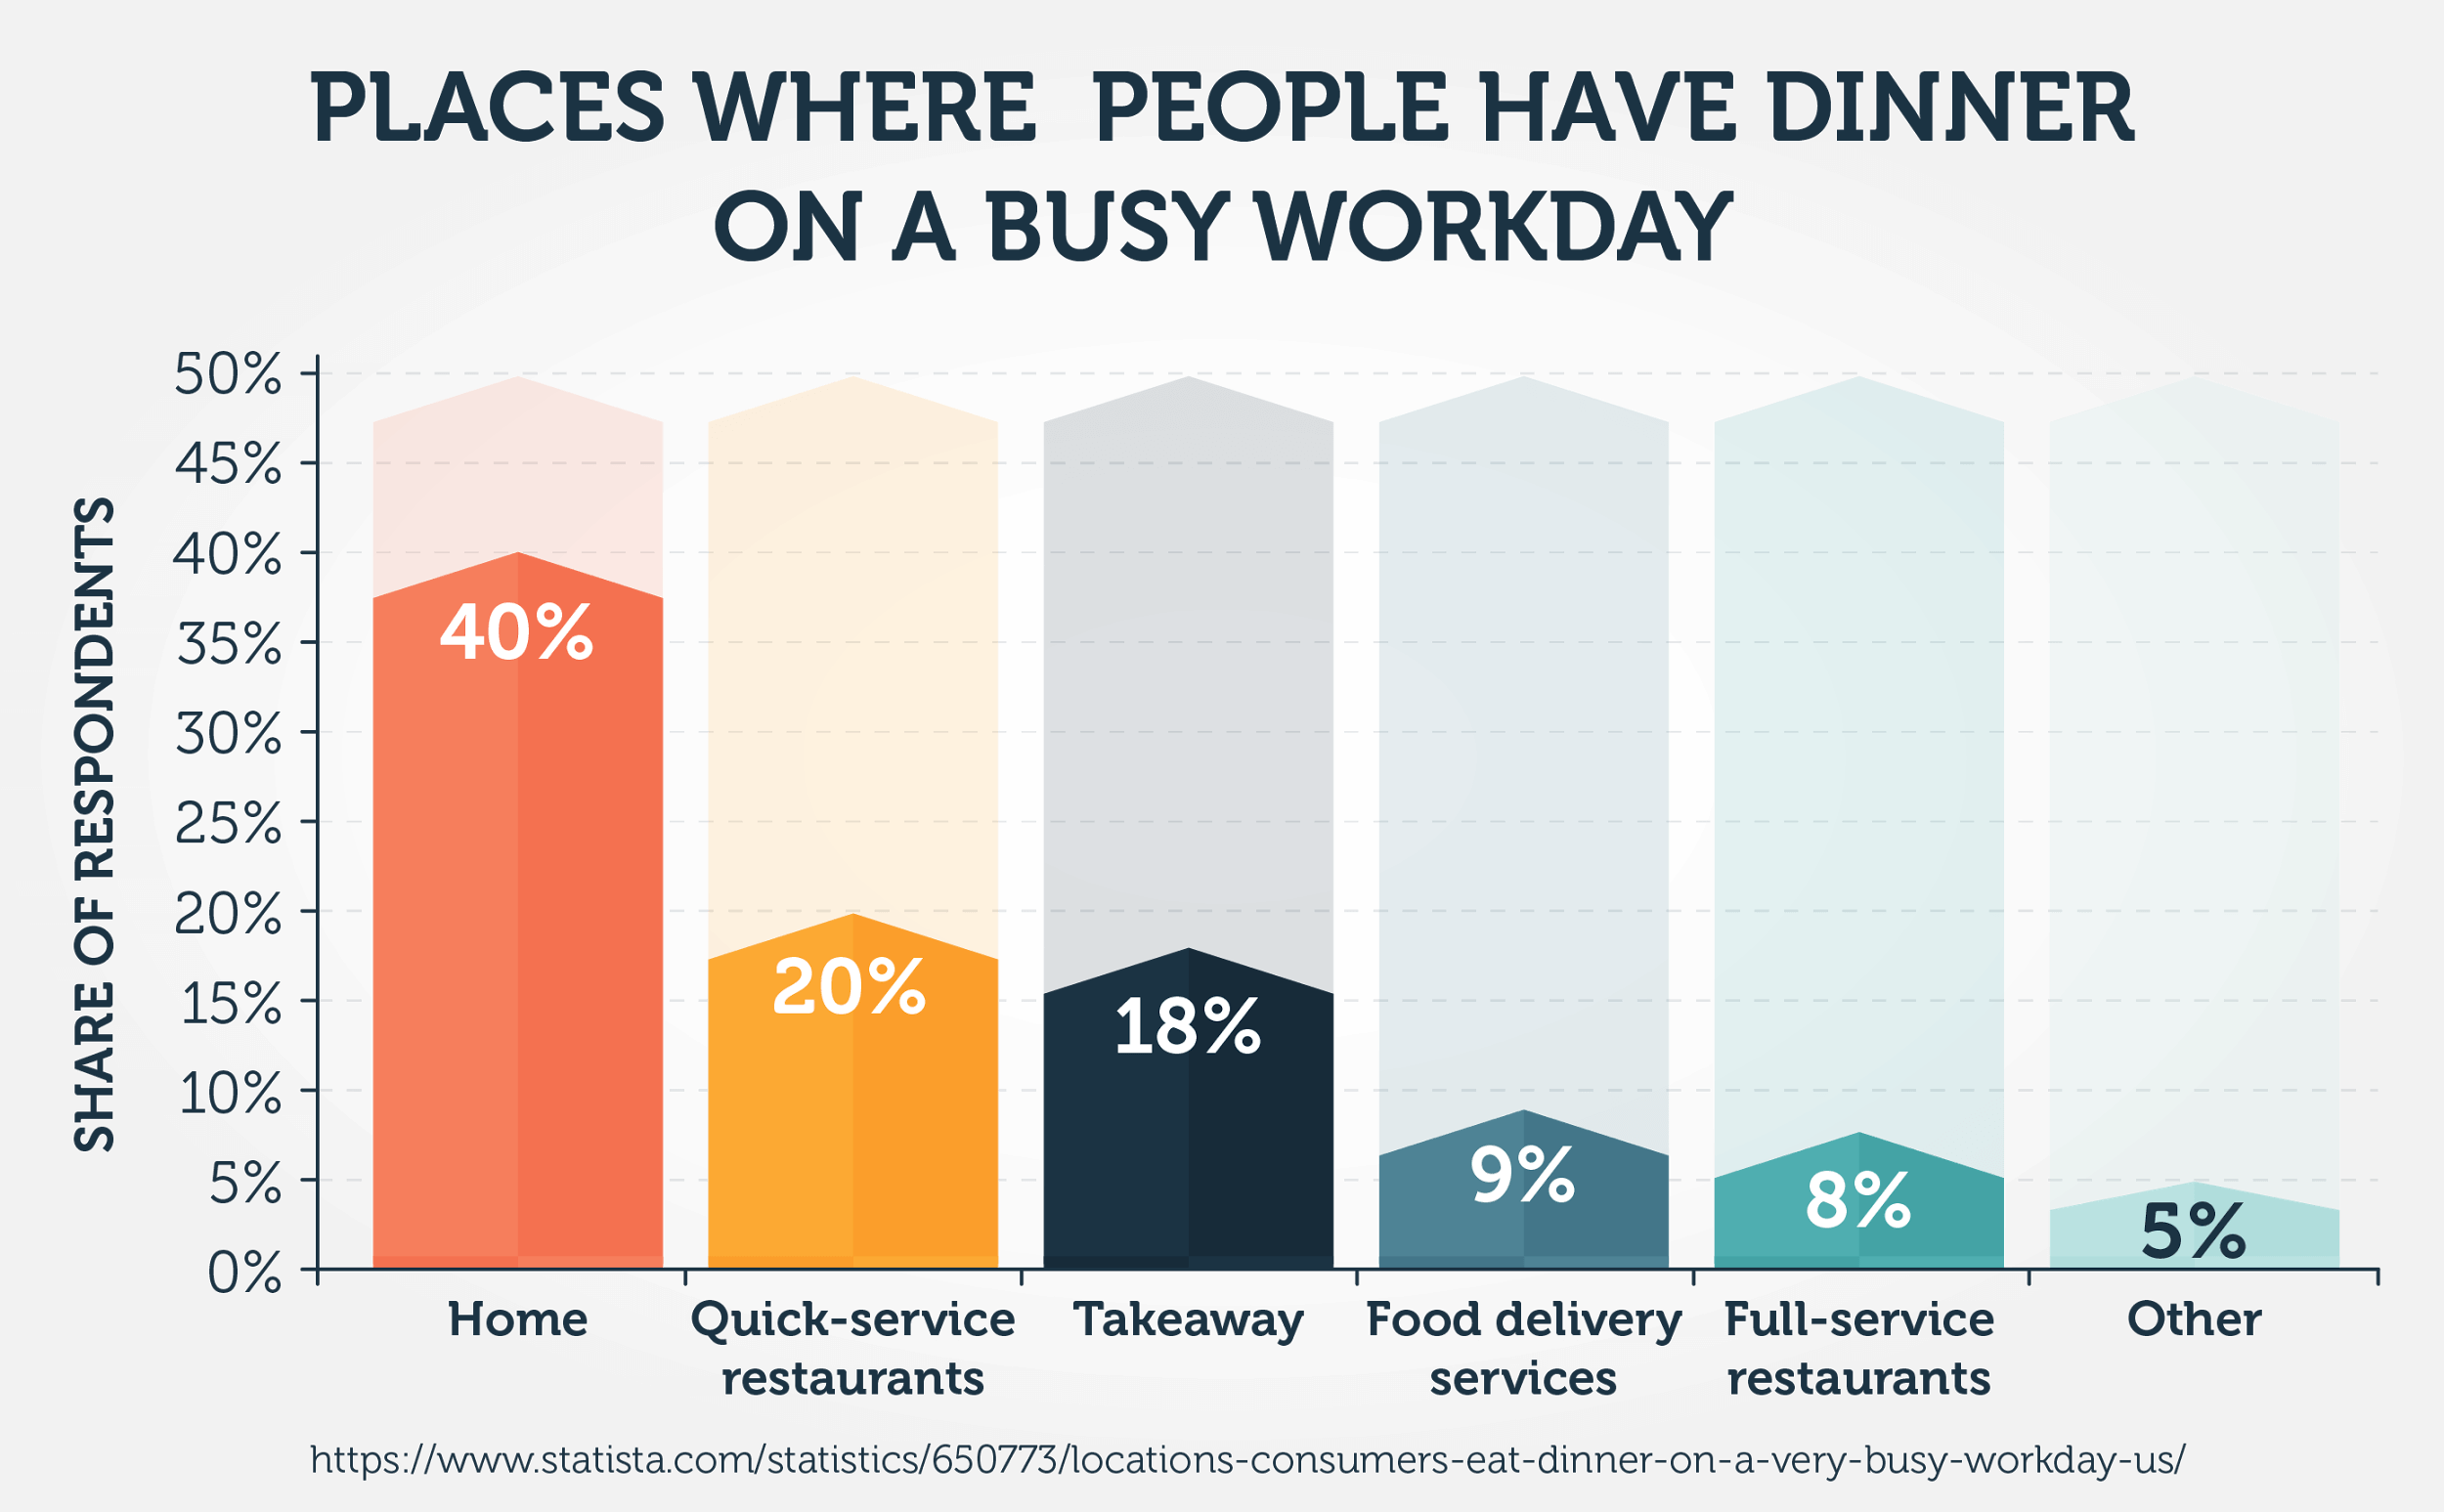 Places Where People Have Dinner on a Busy Workday